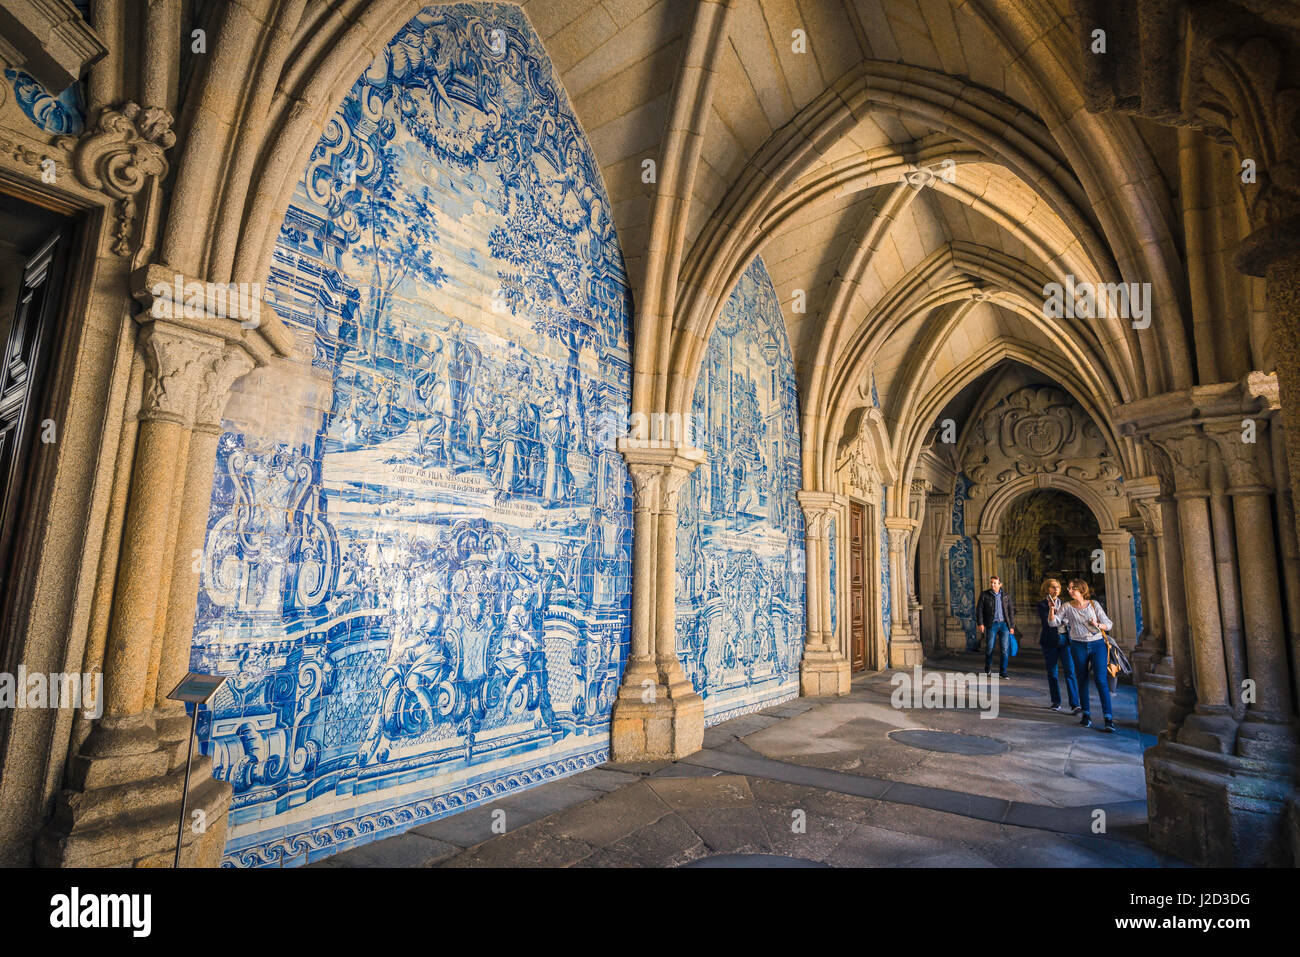 Porto Portugal azulejos, tourists look at a section of wall in the Baroque cathedral cloisters richly decorated - Stock Image